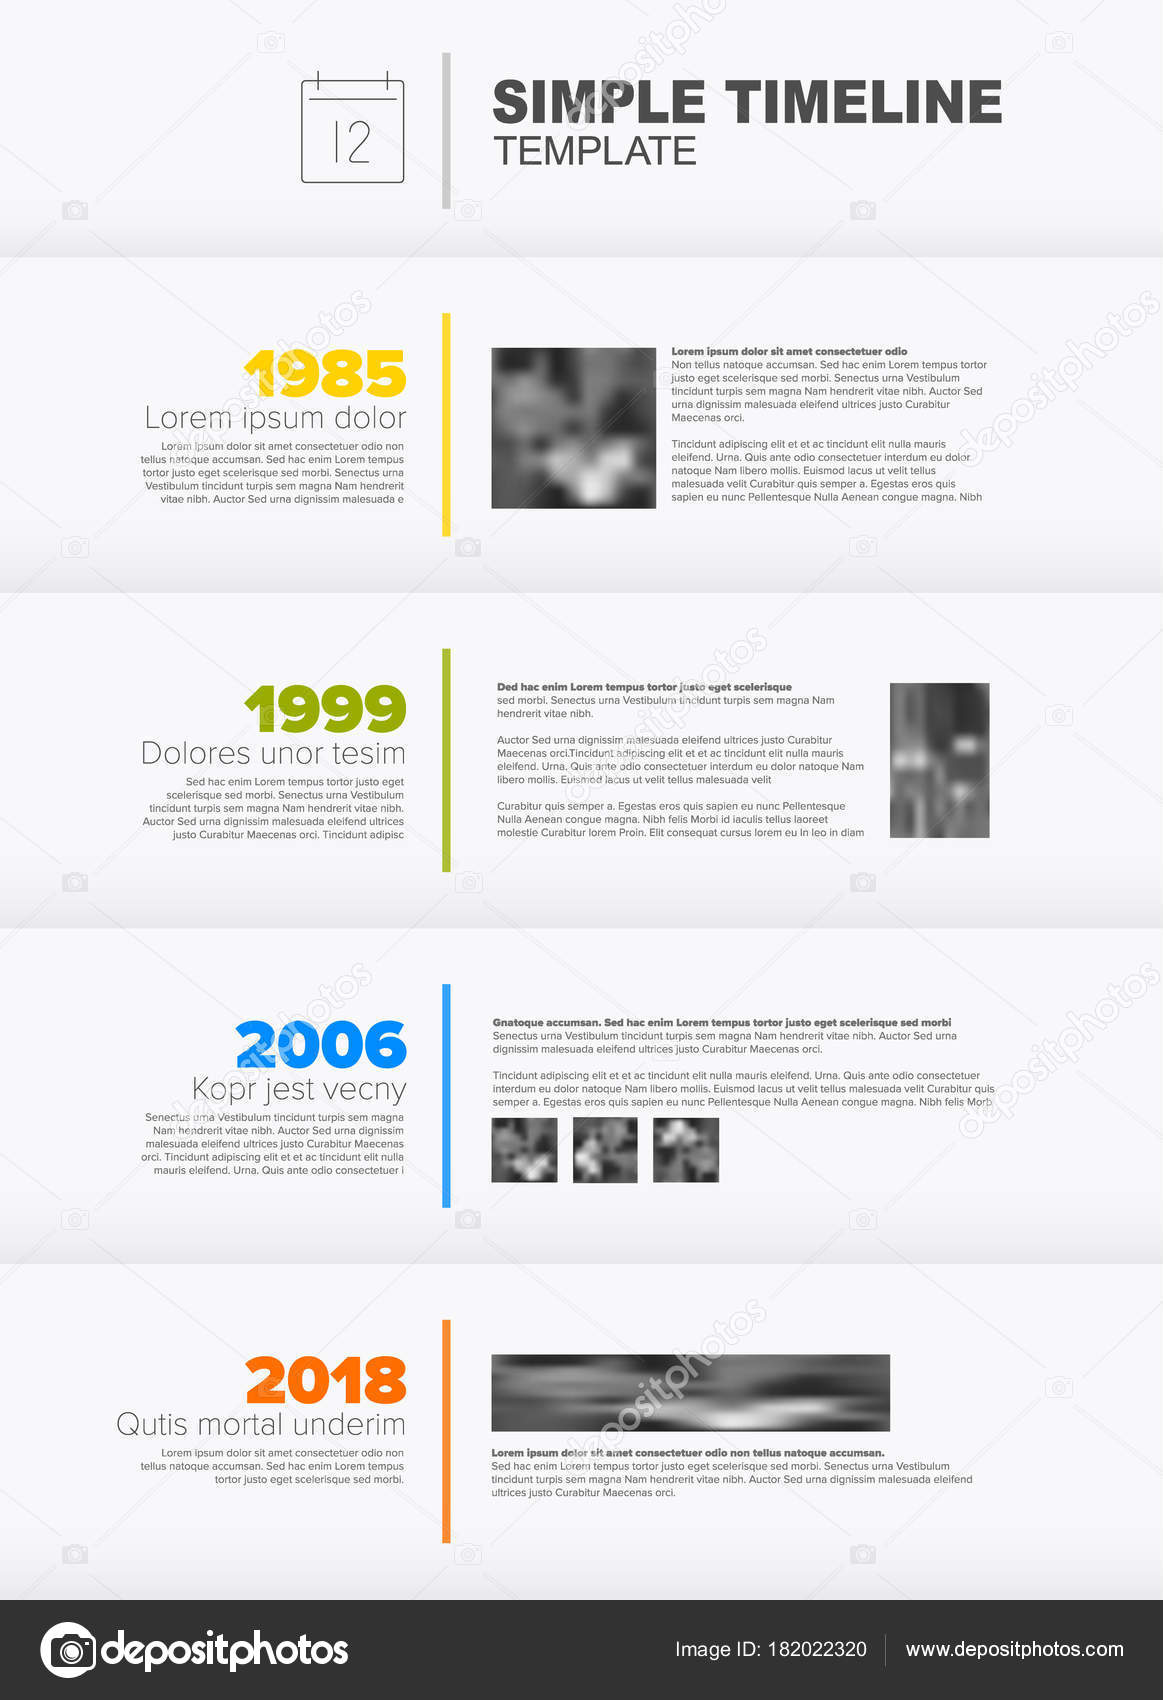 nice simple timeline template images